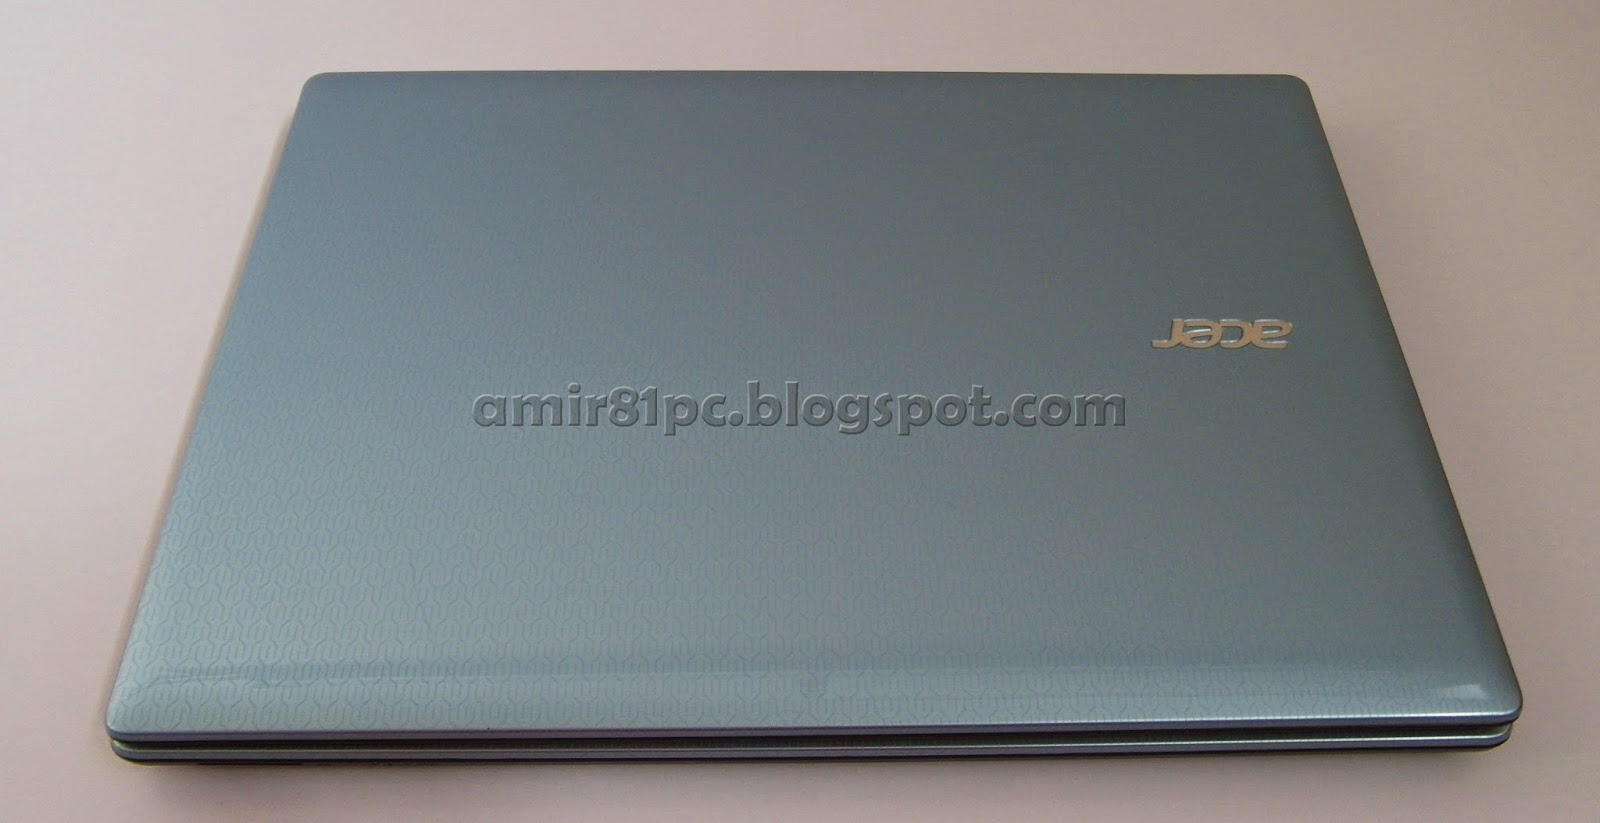 Three A Tech Computer Sales and Services: Used Laptop Acer